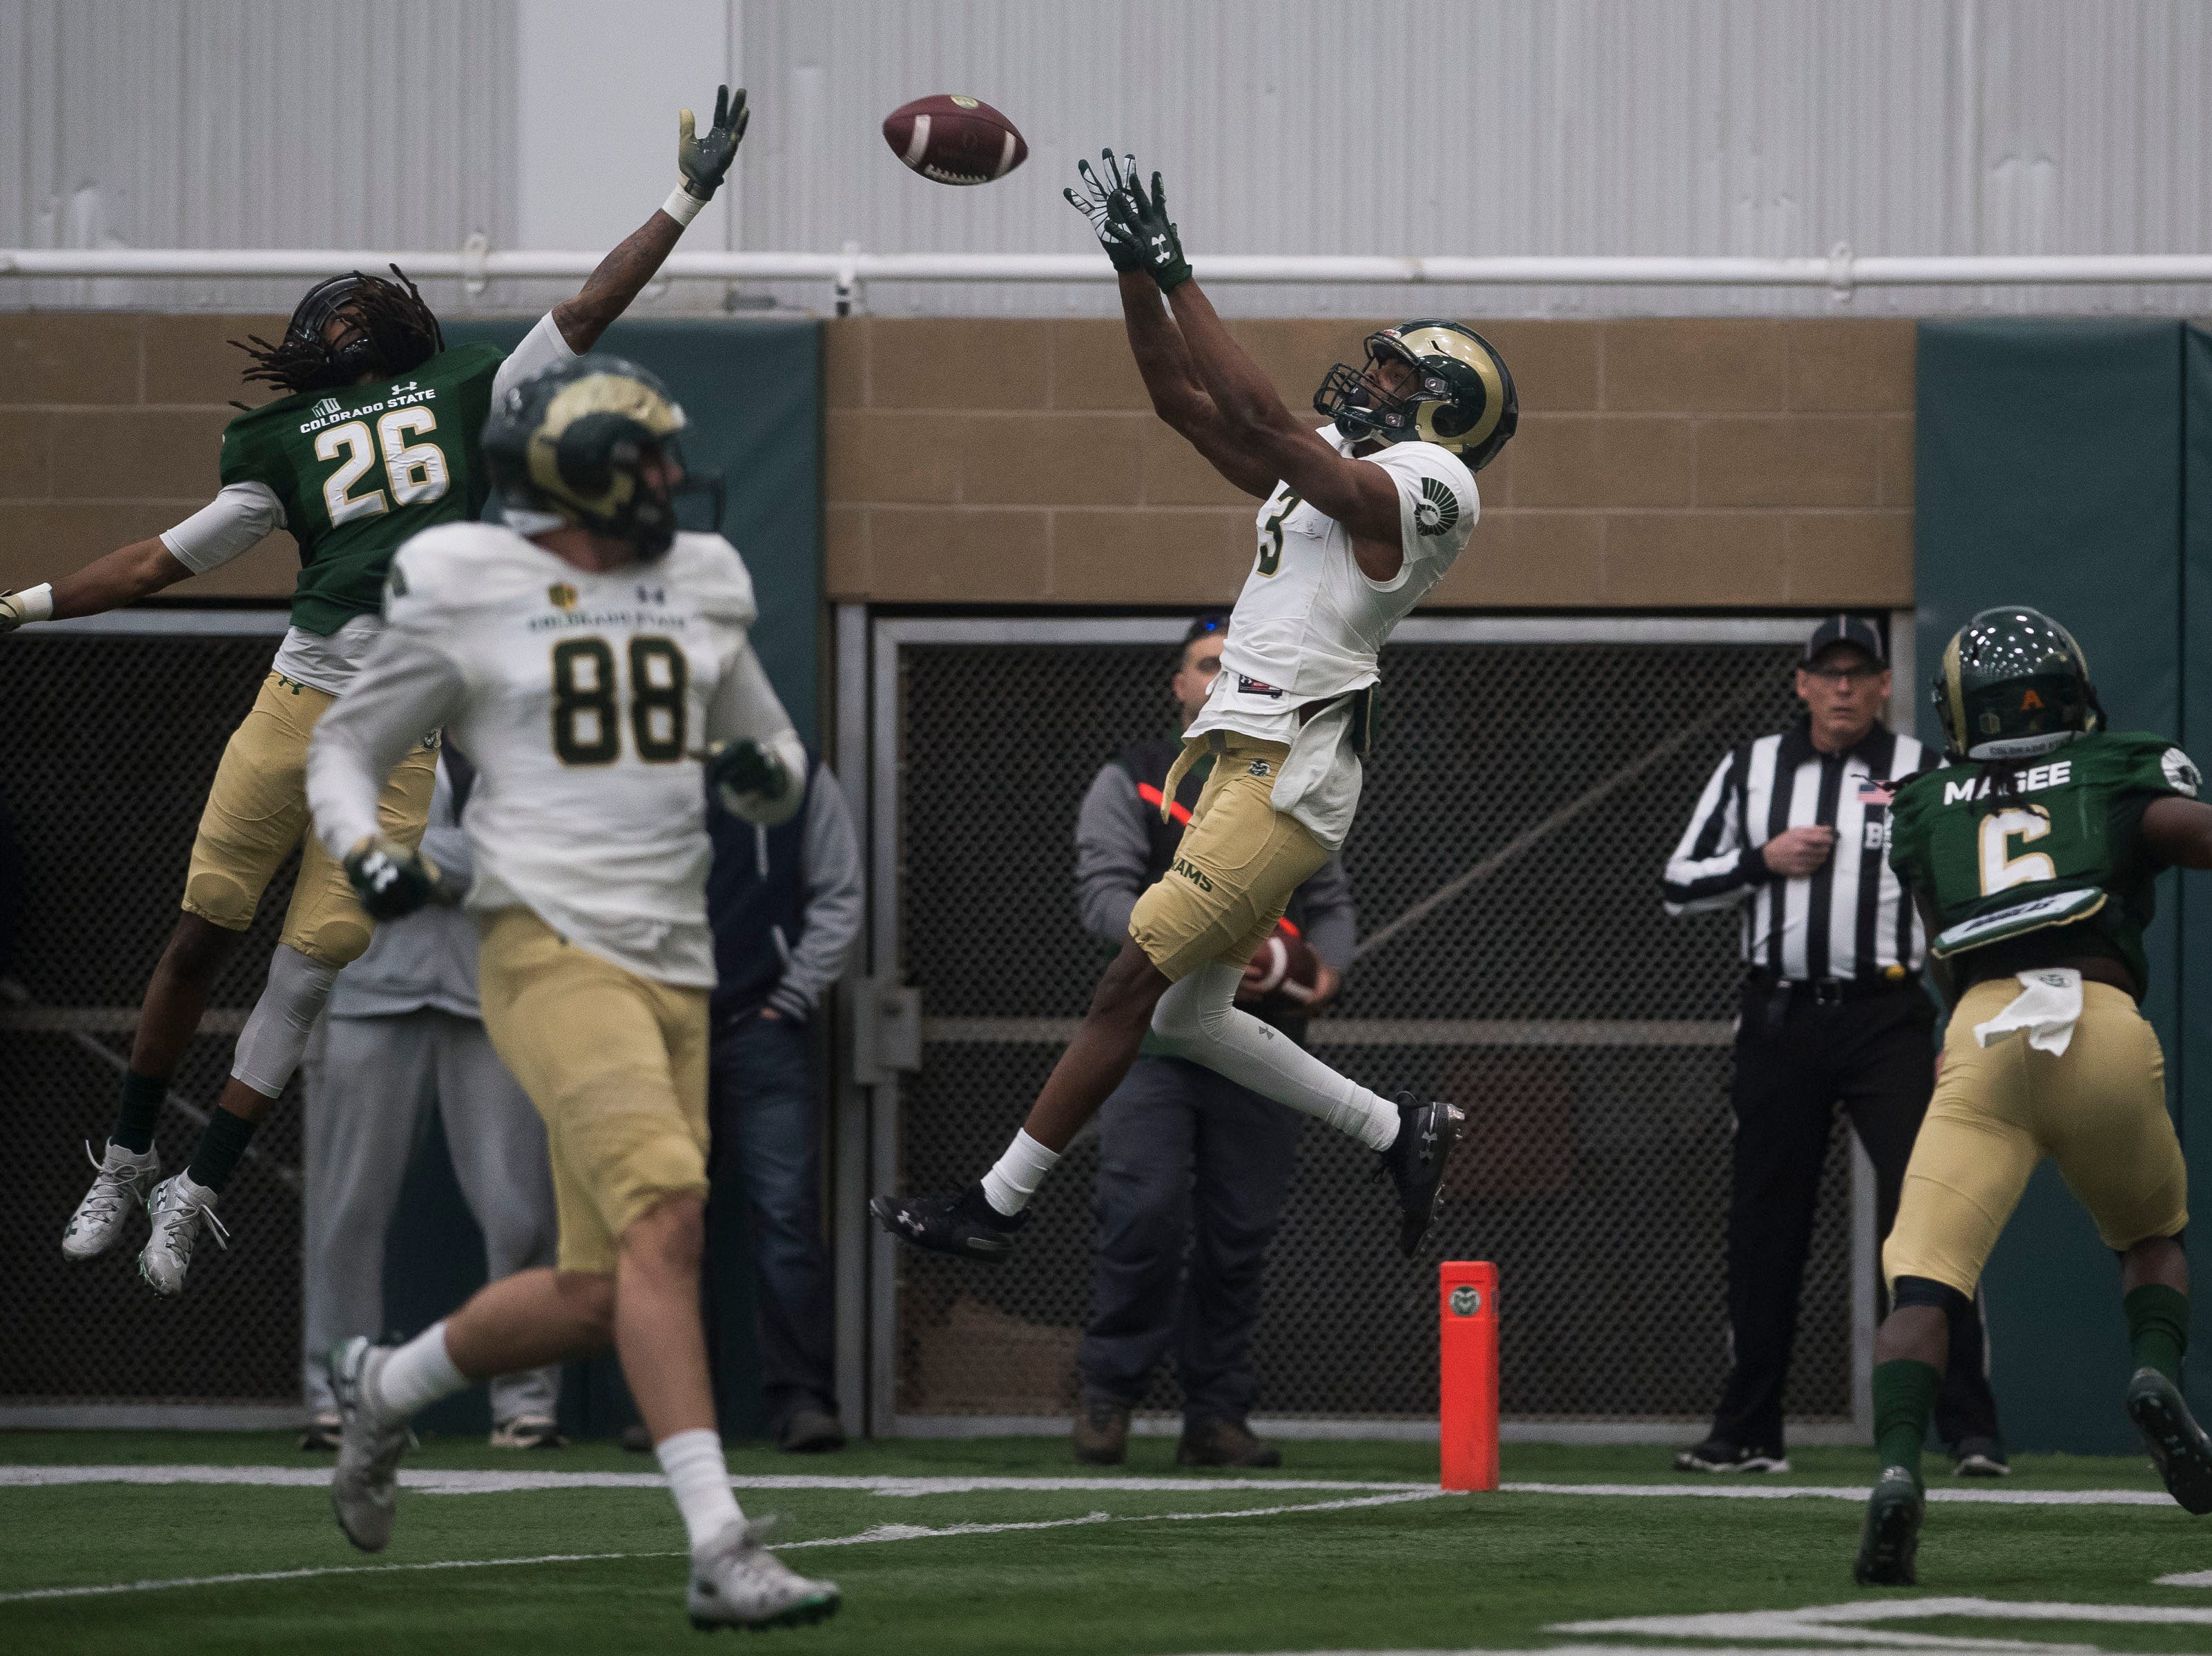 CSU sophomore wide receiver E.J. Scott (3) pulls in a touchdown reception while being defended by junior corner Mean McNeal (26) during CSU's Spring game on Thursday, March 14, 2019, at their indoor practice facility in Fort Collins, Colo.